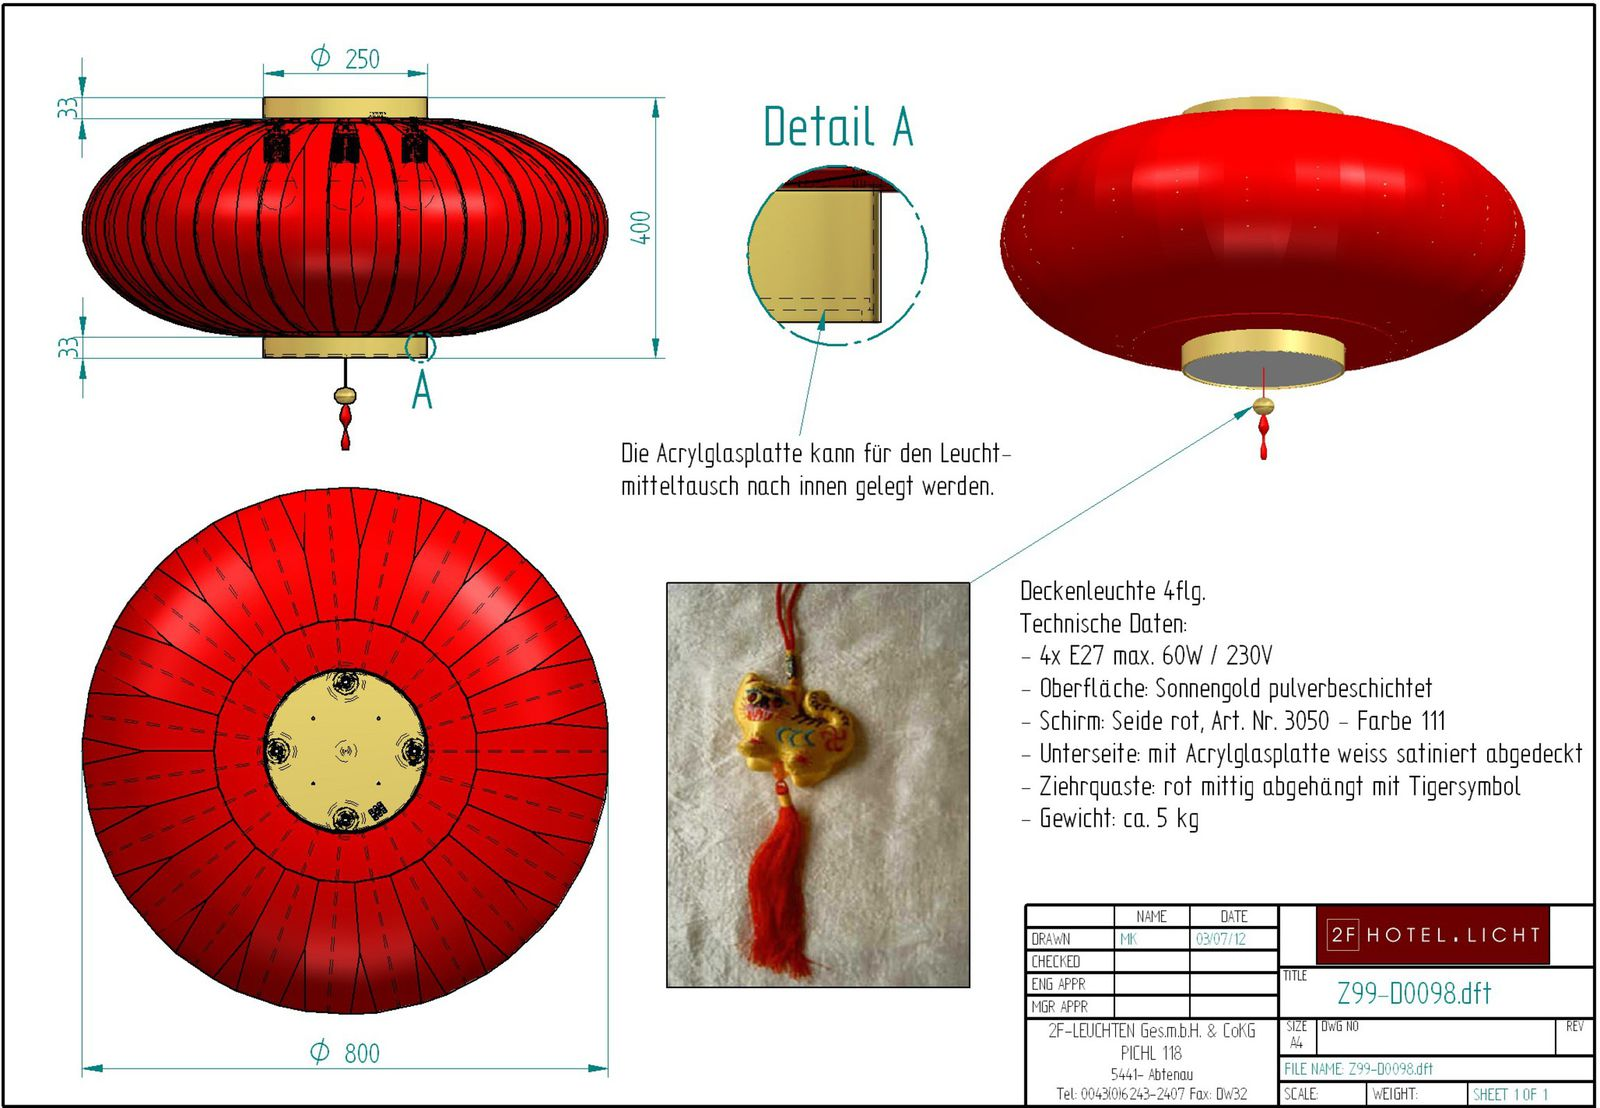 Ceiling lamp China, diameter=800mm, height=400mm, red